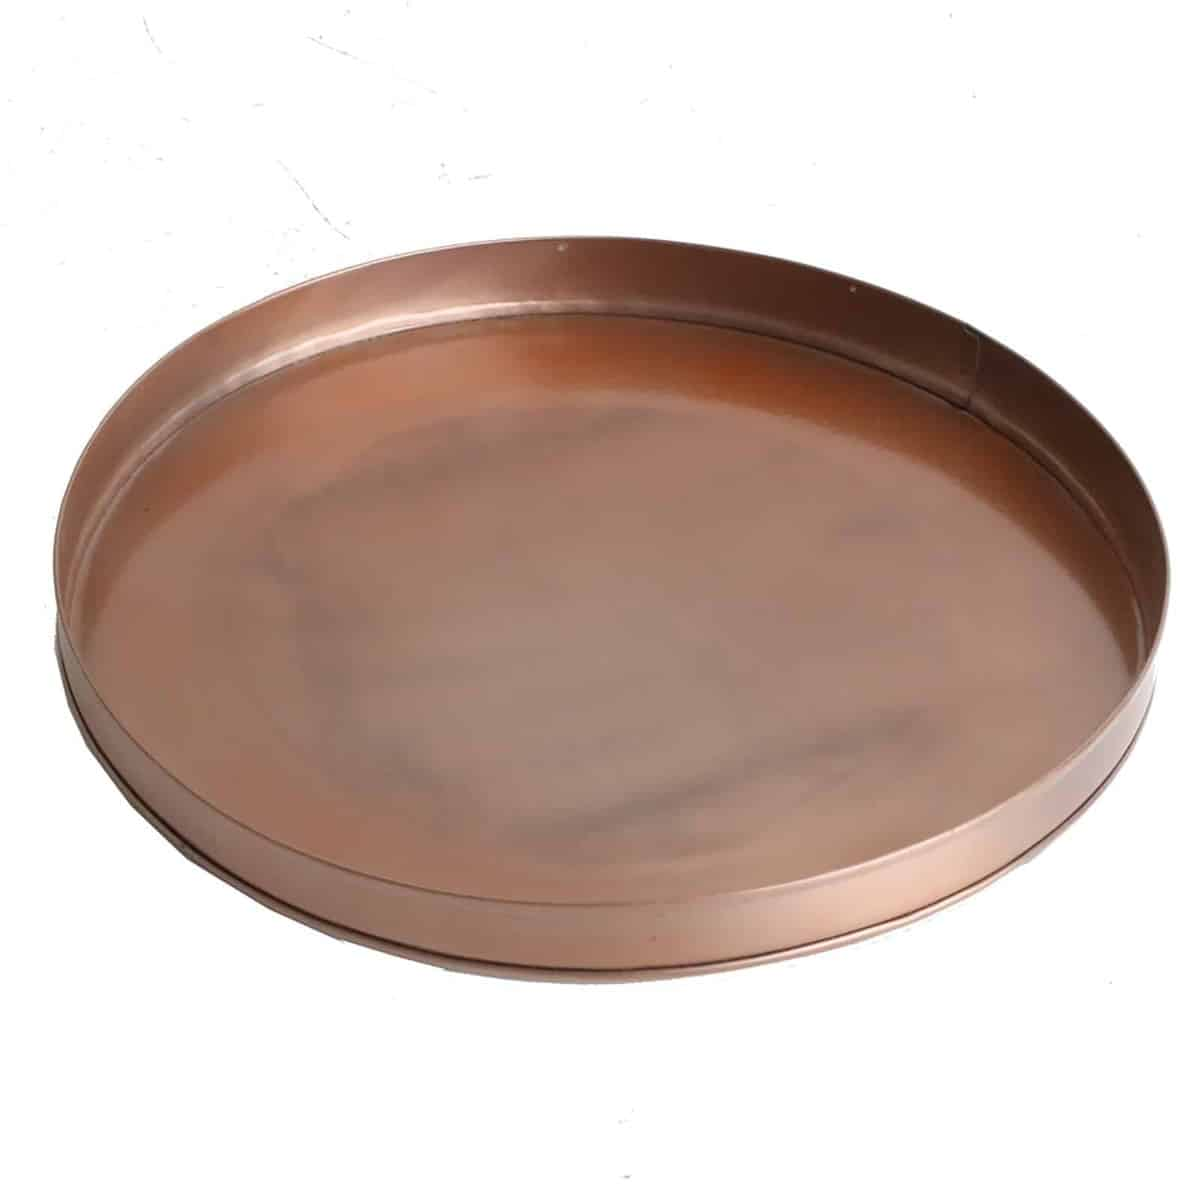 top view of copper round tray